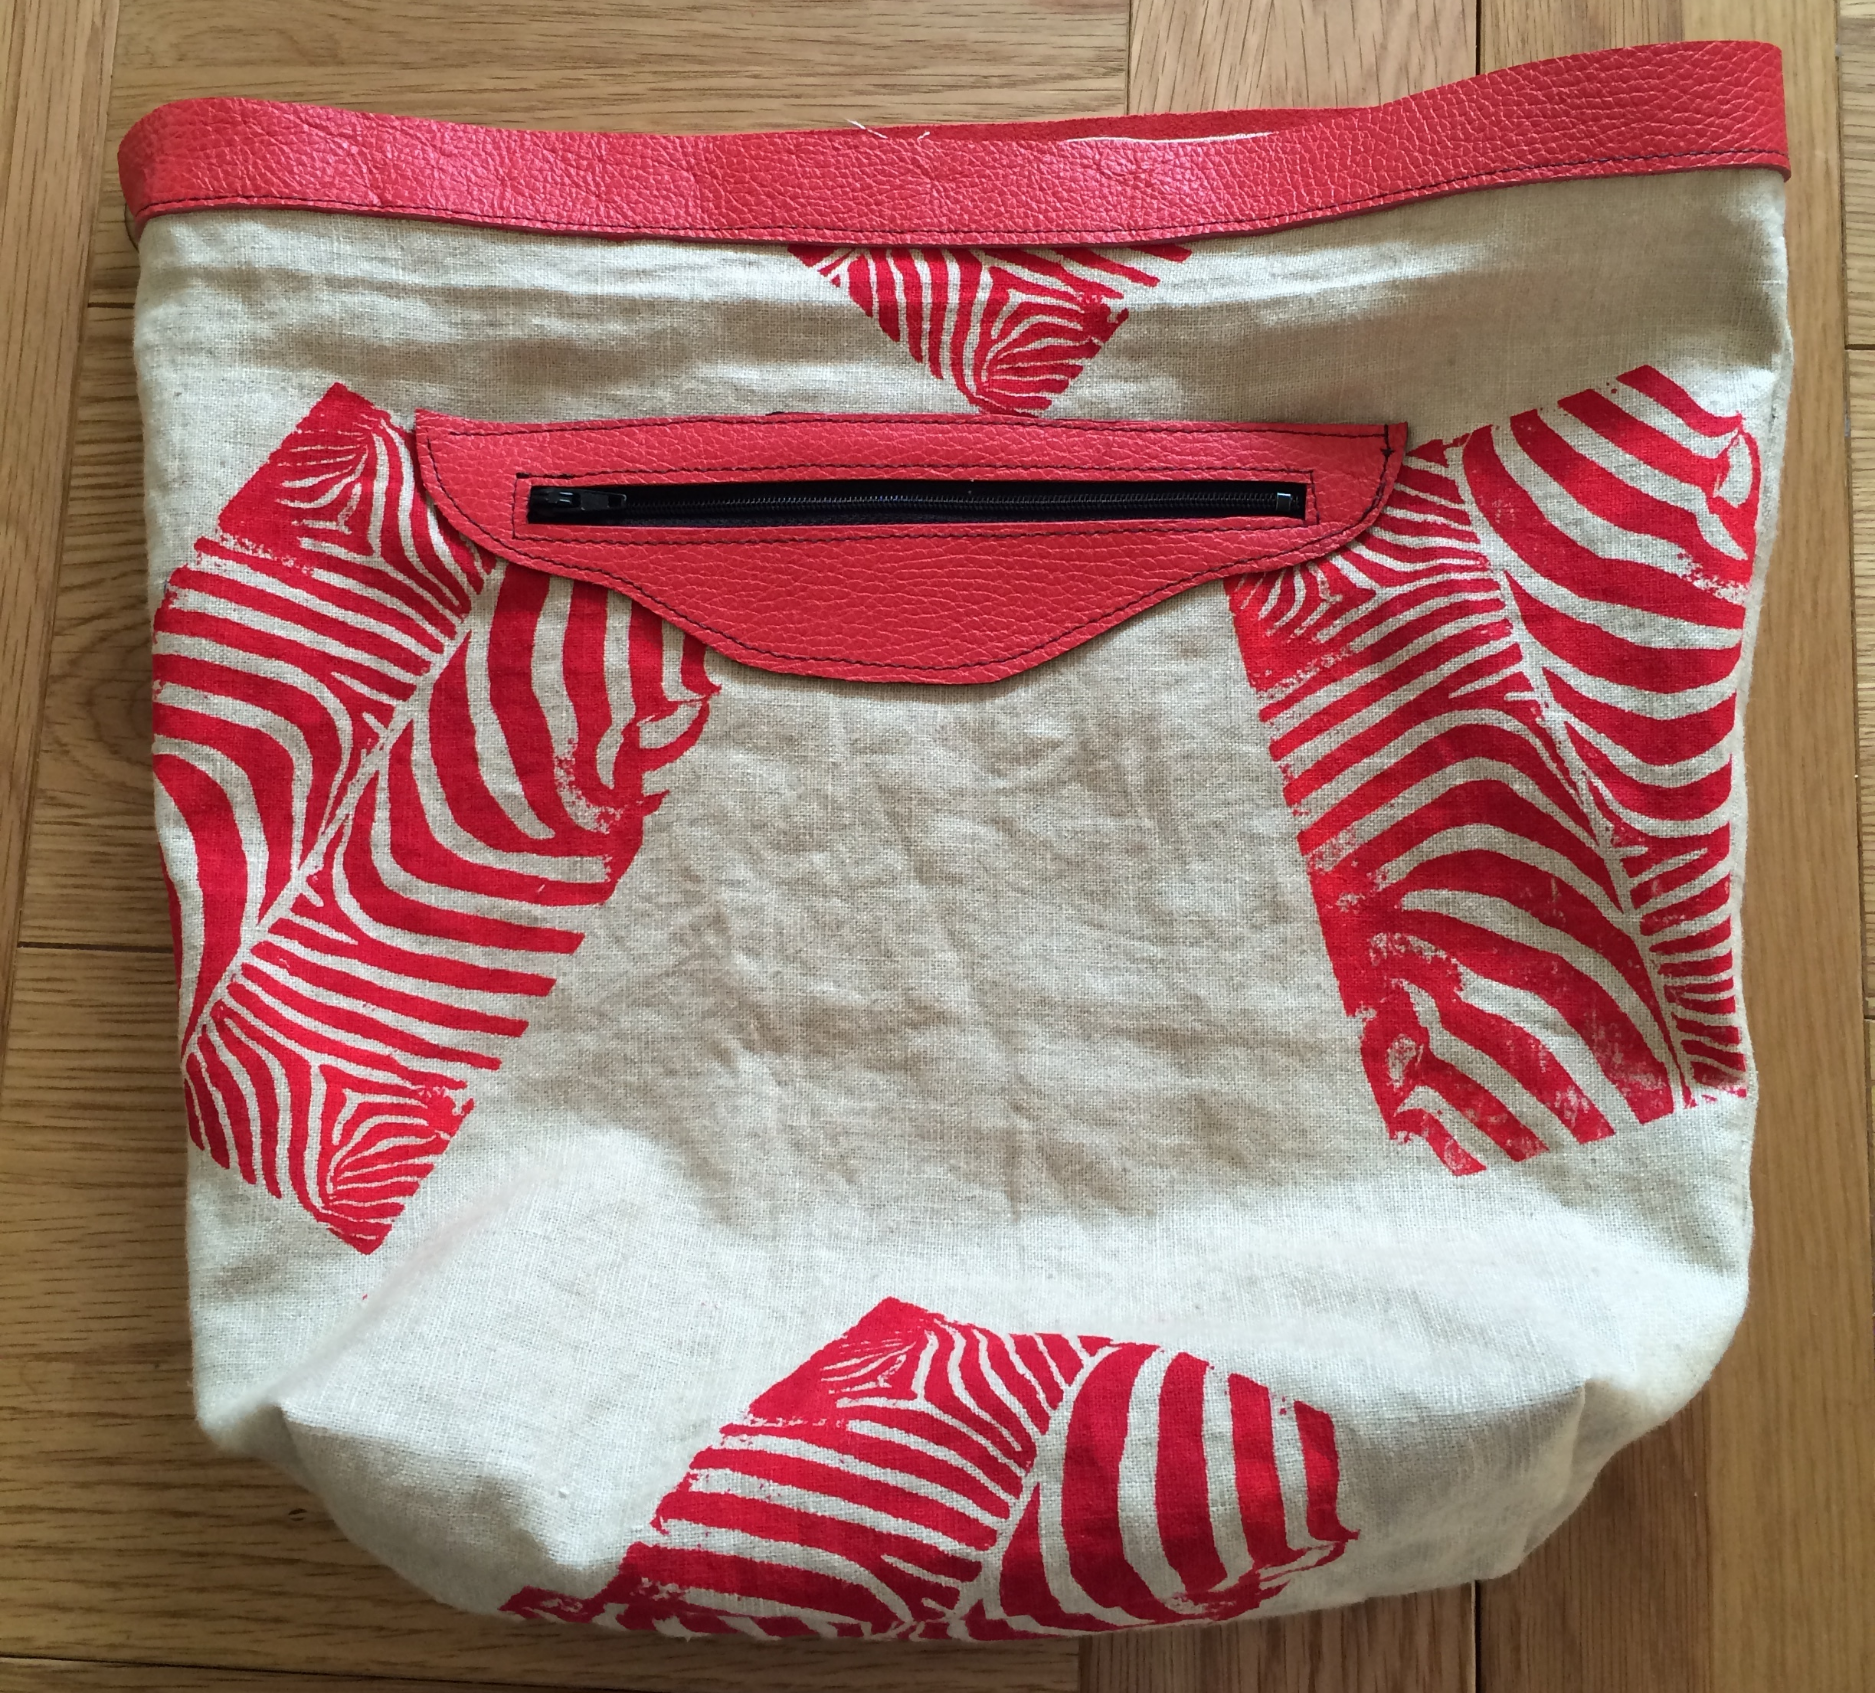 The lining of the bag, before the pom pom trim was attached, showing my hand printed zebra design and inside pocket detail.